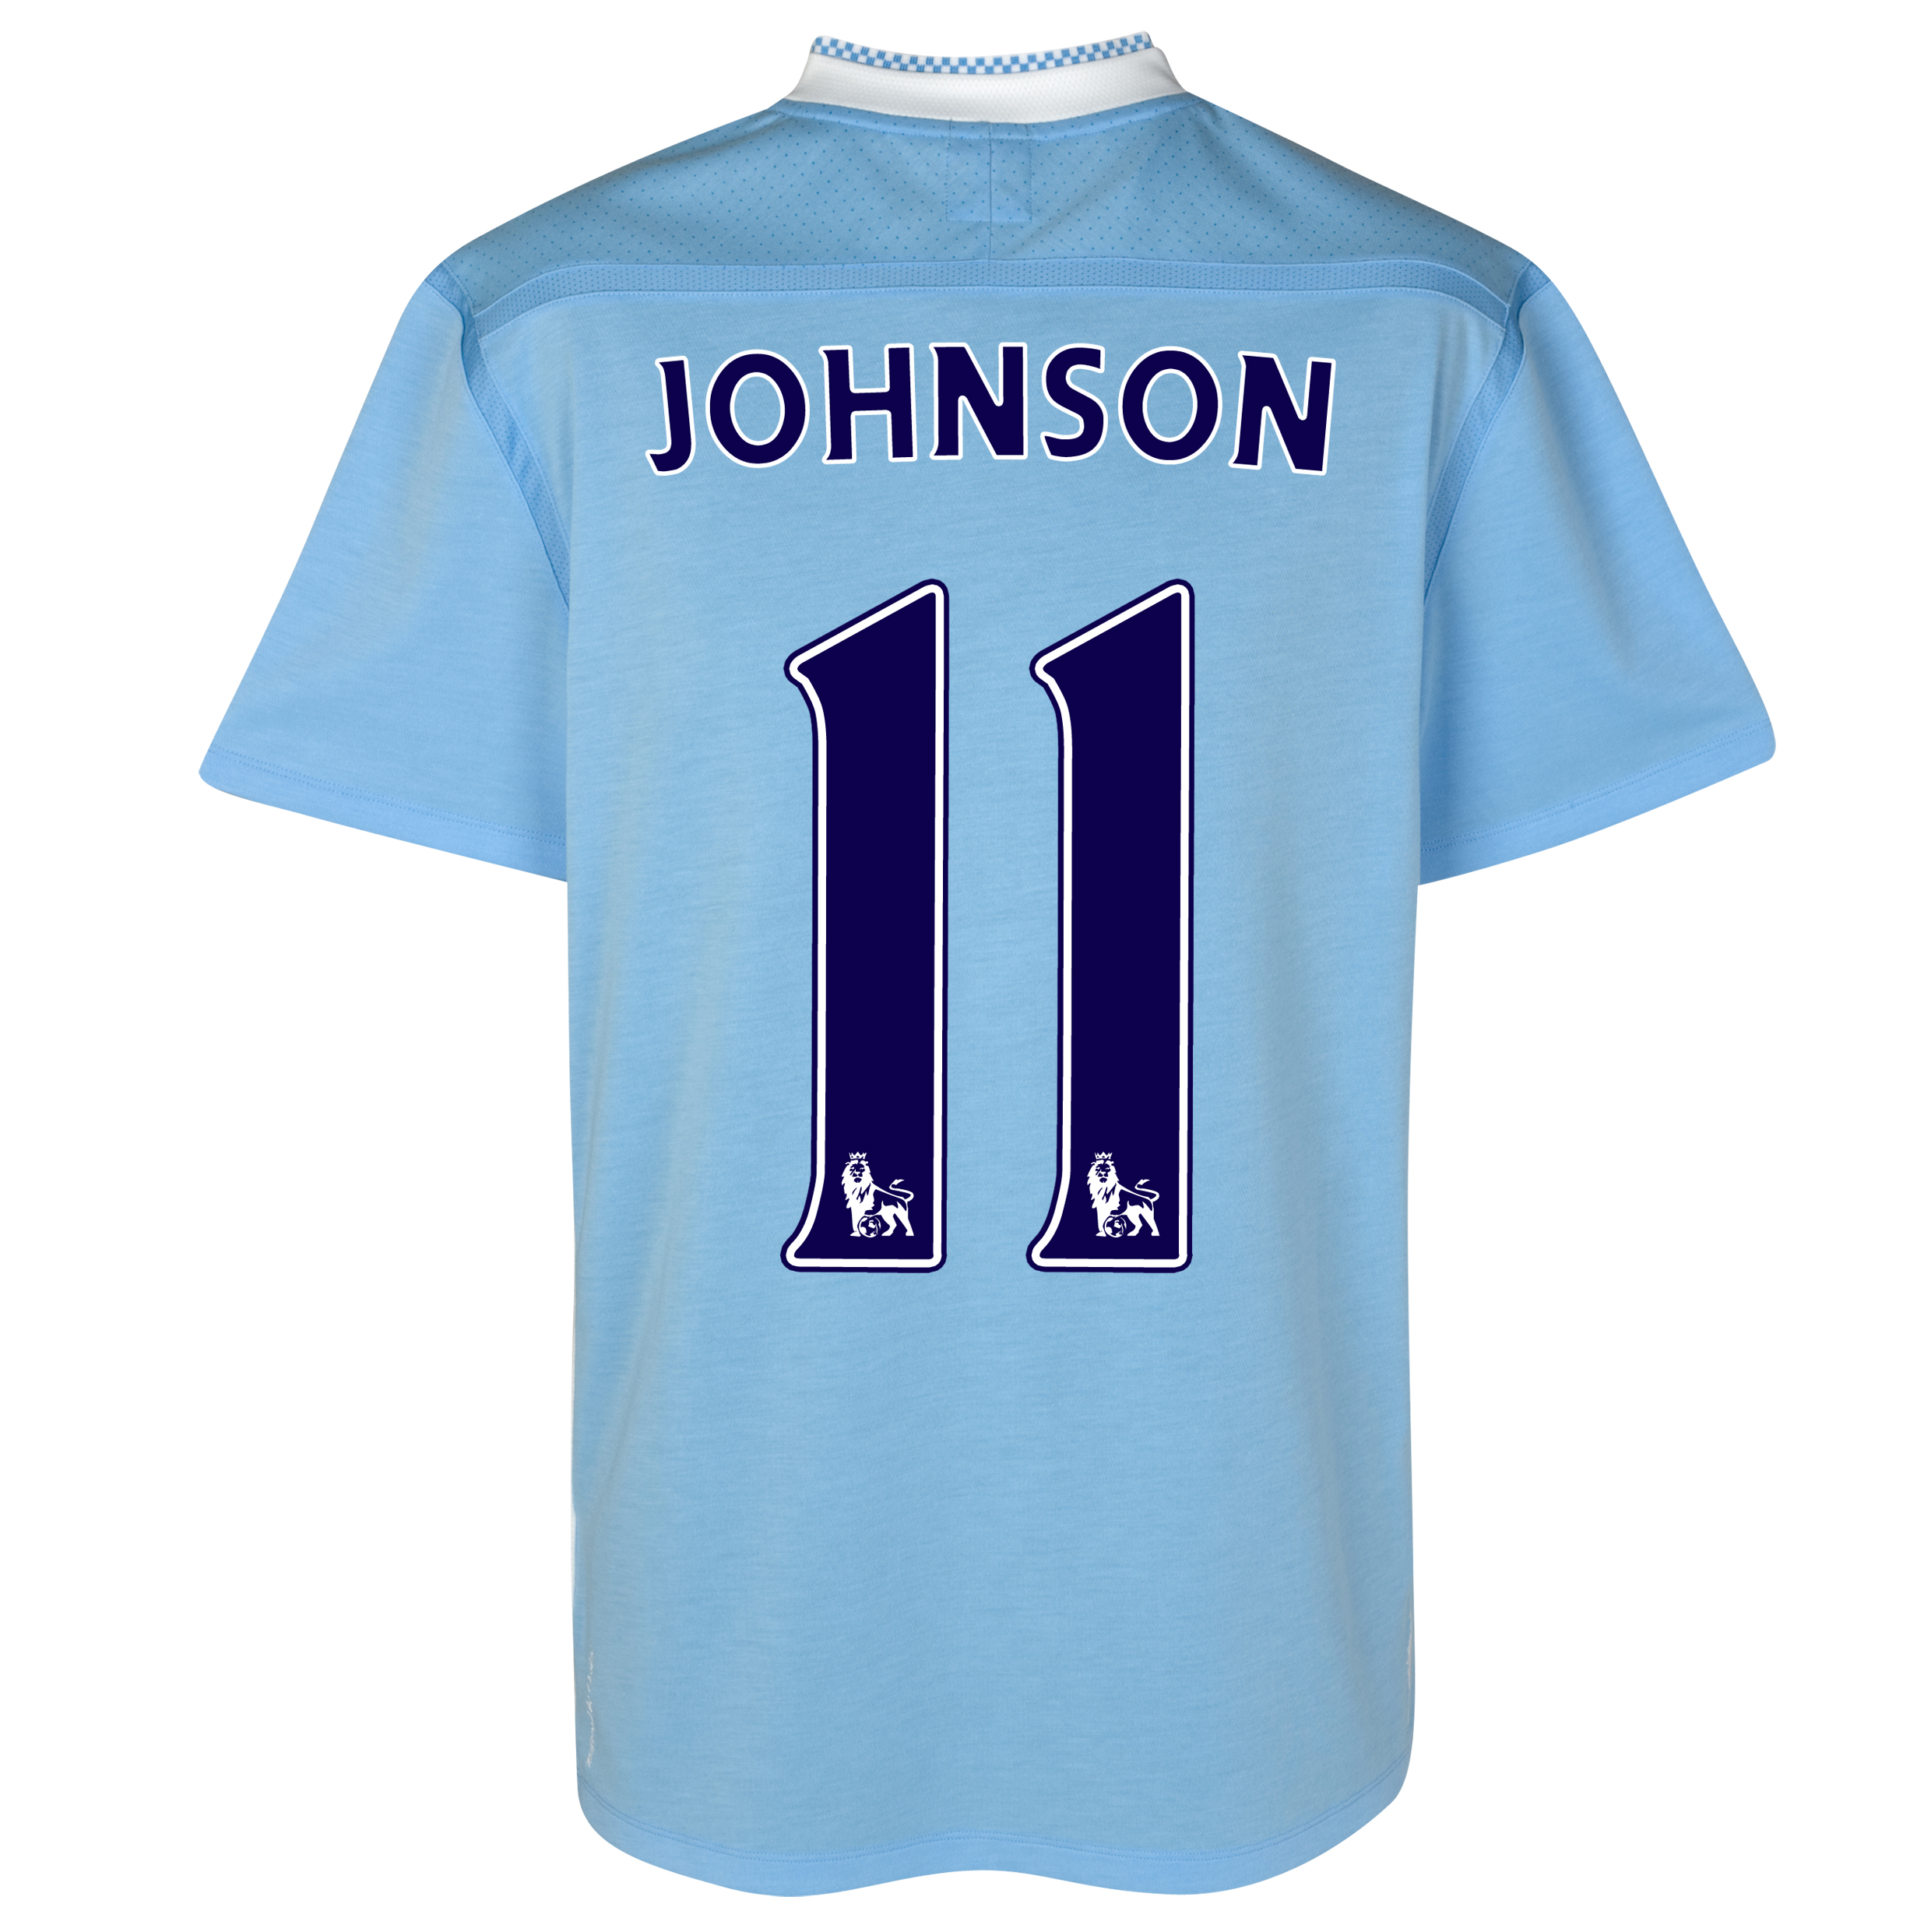 Manchester City Home Shirt 2011/12 with Johnson 11 printing